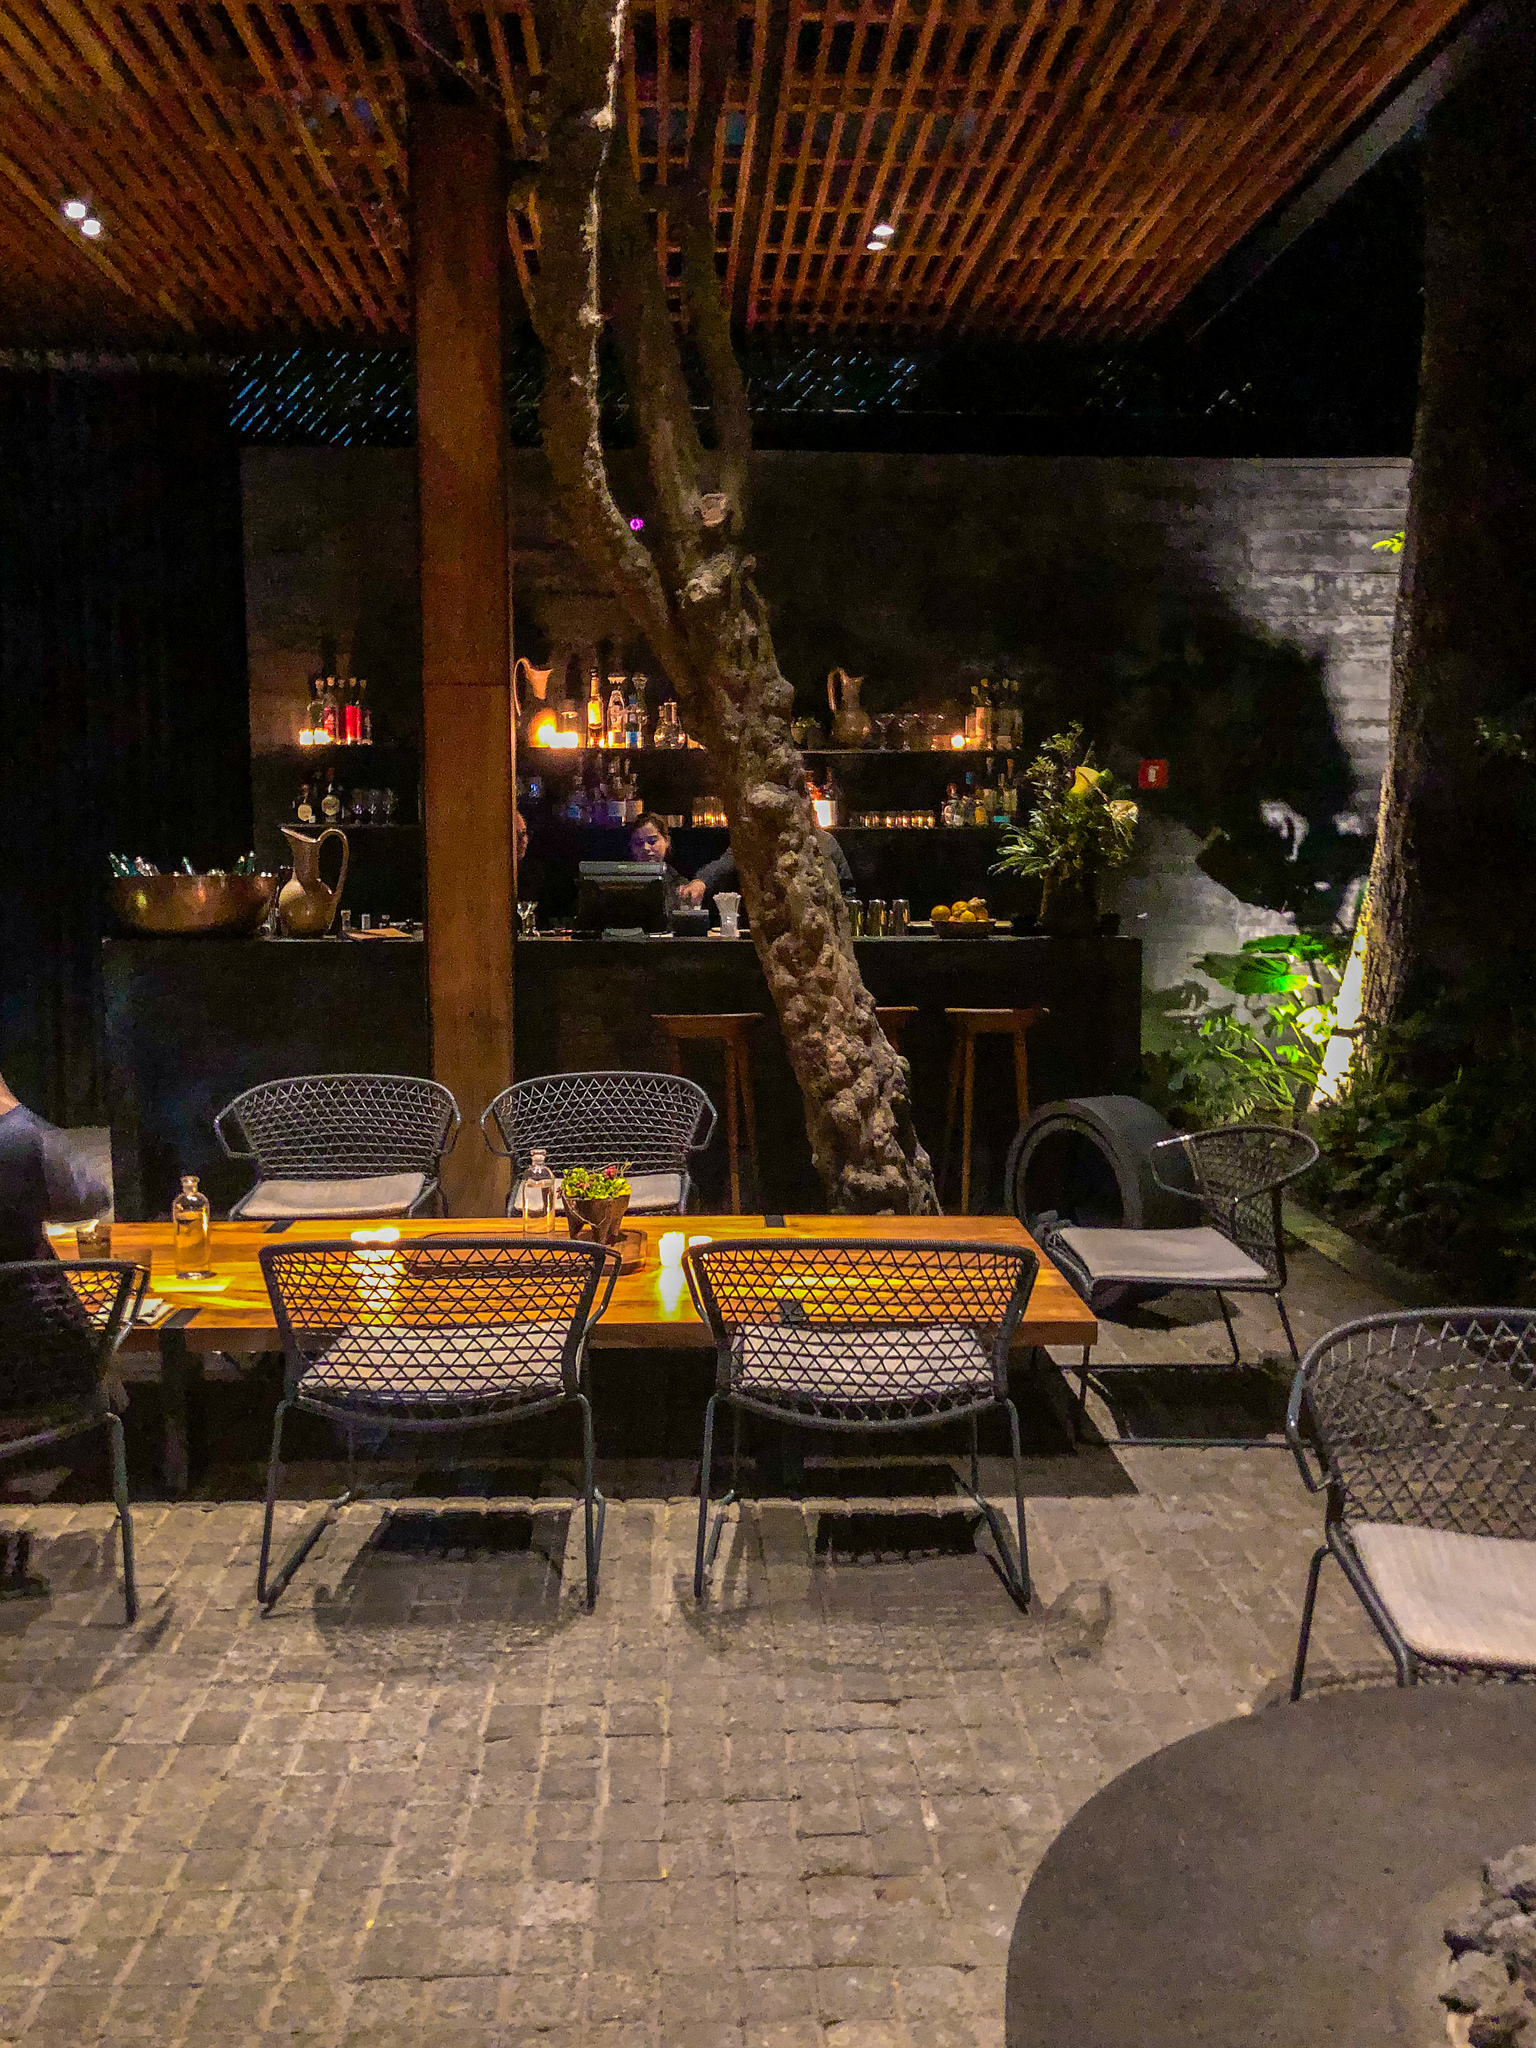 An Honest Review of Pujol's Omakase Taco Tasting Menu from the Best Restaurant in Mexico City